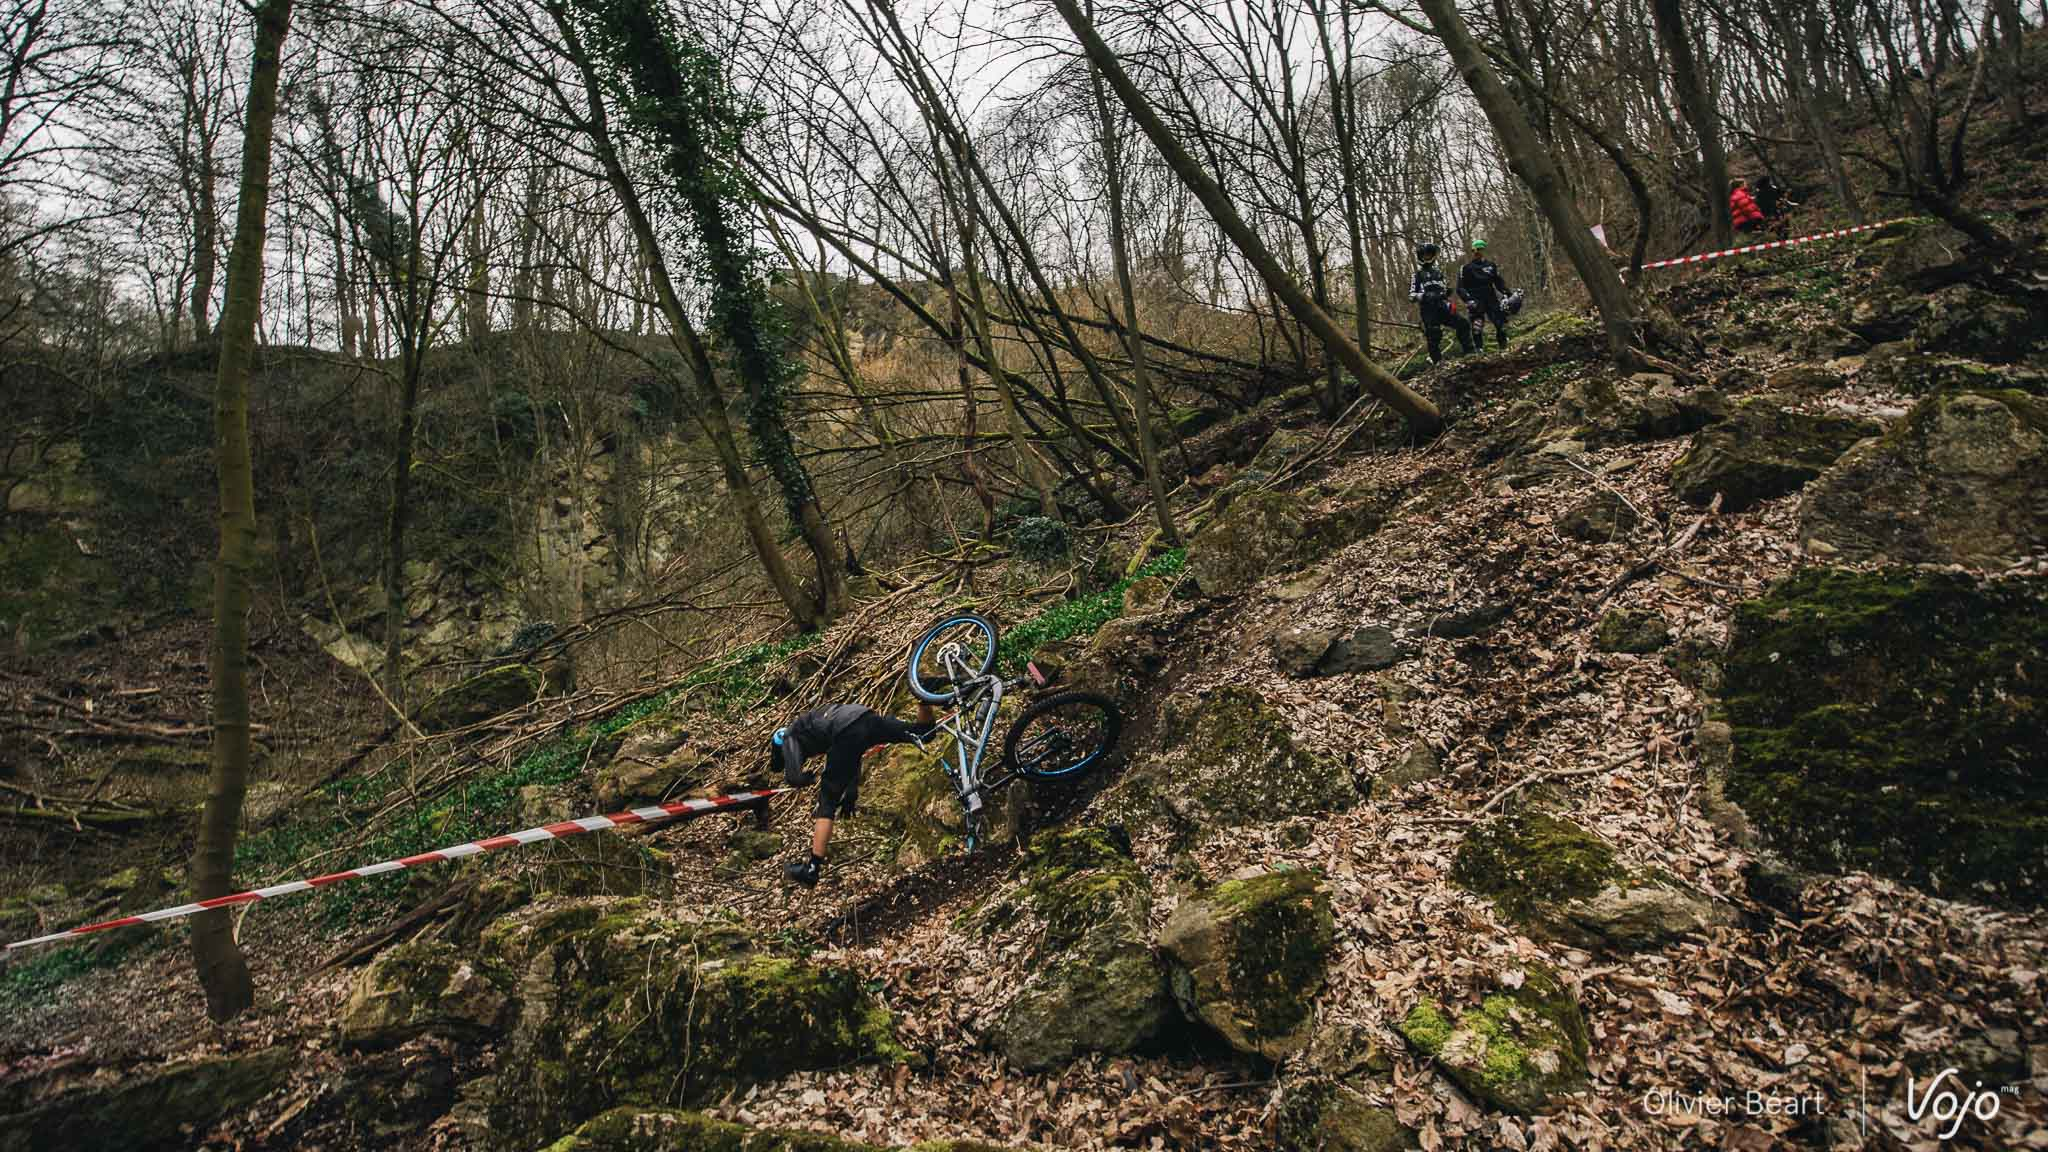 Belgian_Enduro_Cup_Chaudfontaine_2016_Copyright_OBeart_Vojomag-1-4